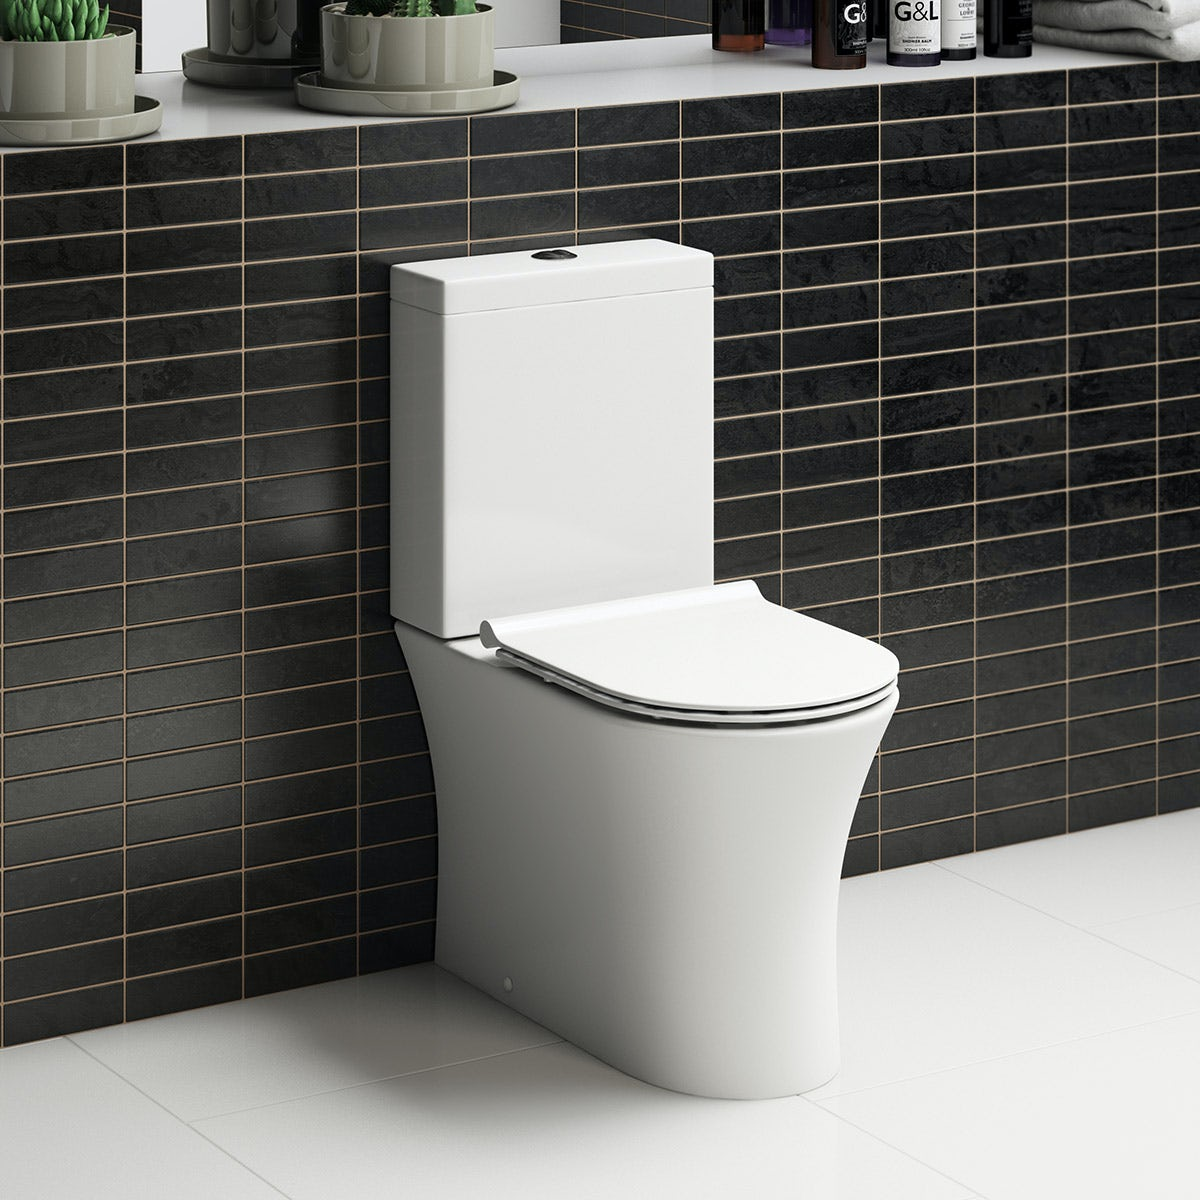 Mode Hardy rimless close coupled toilet inc slimline soft close seat